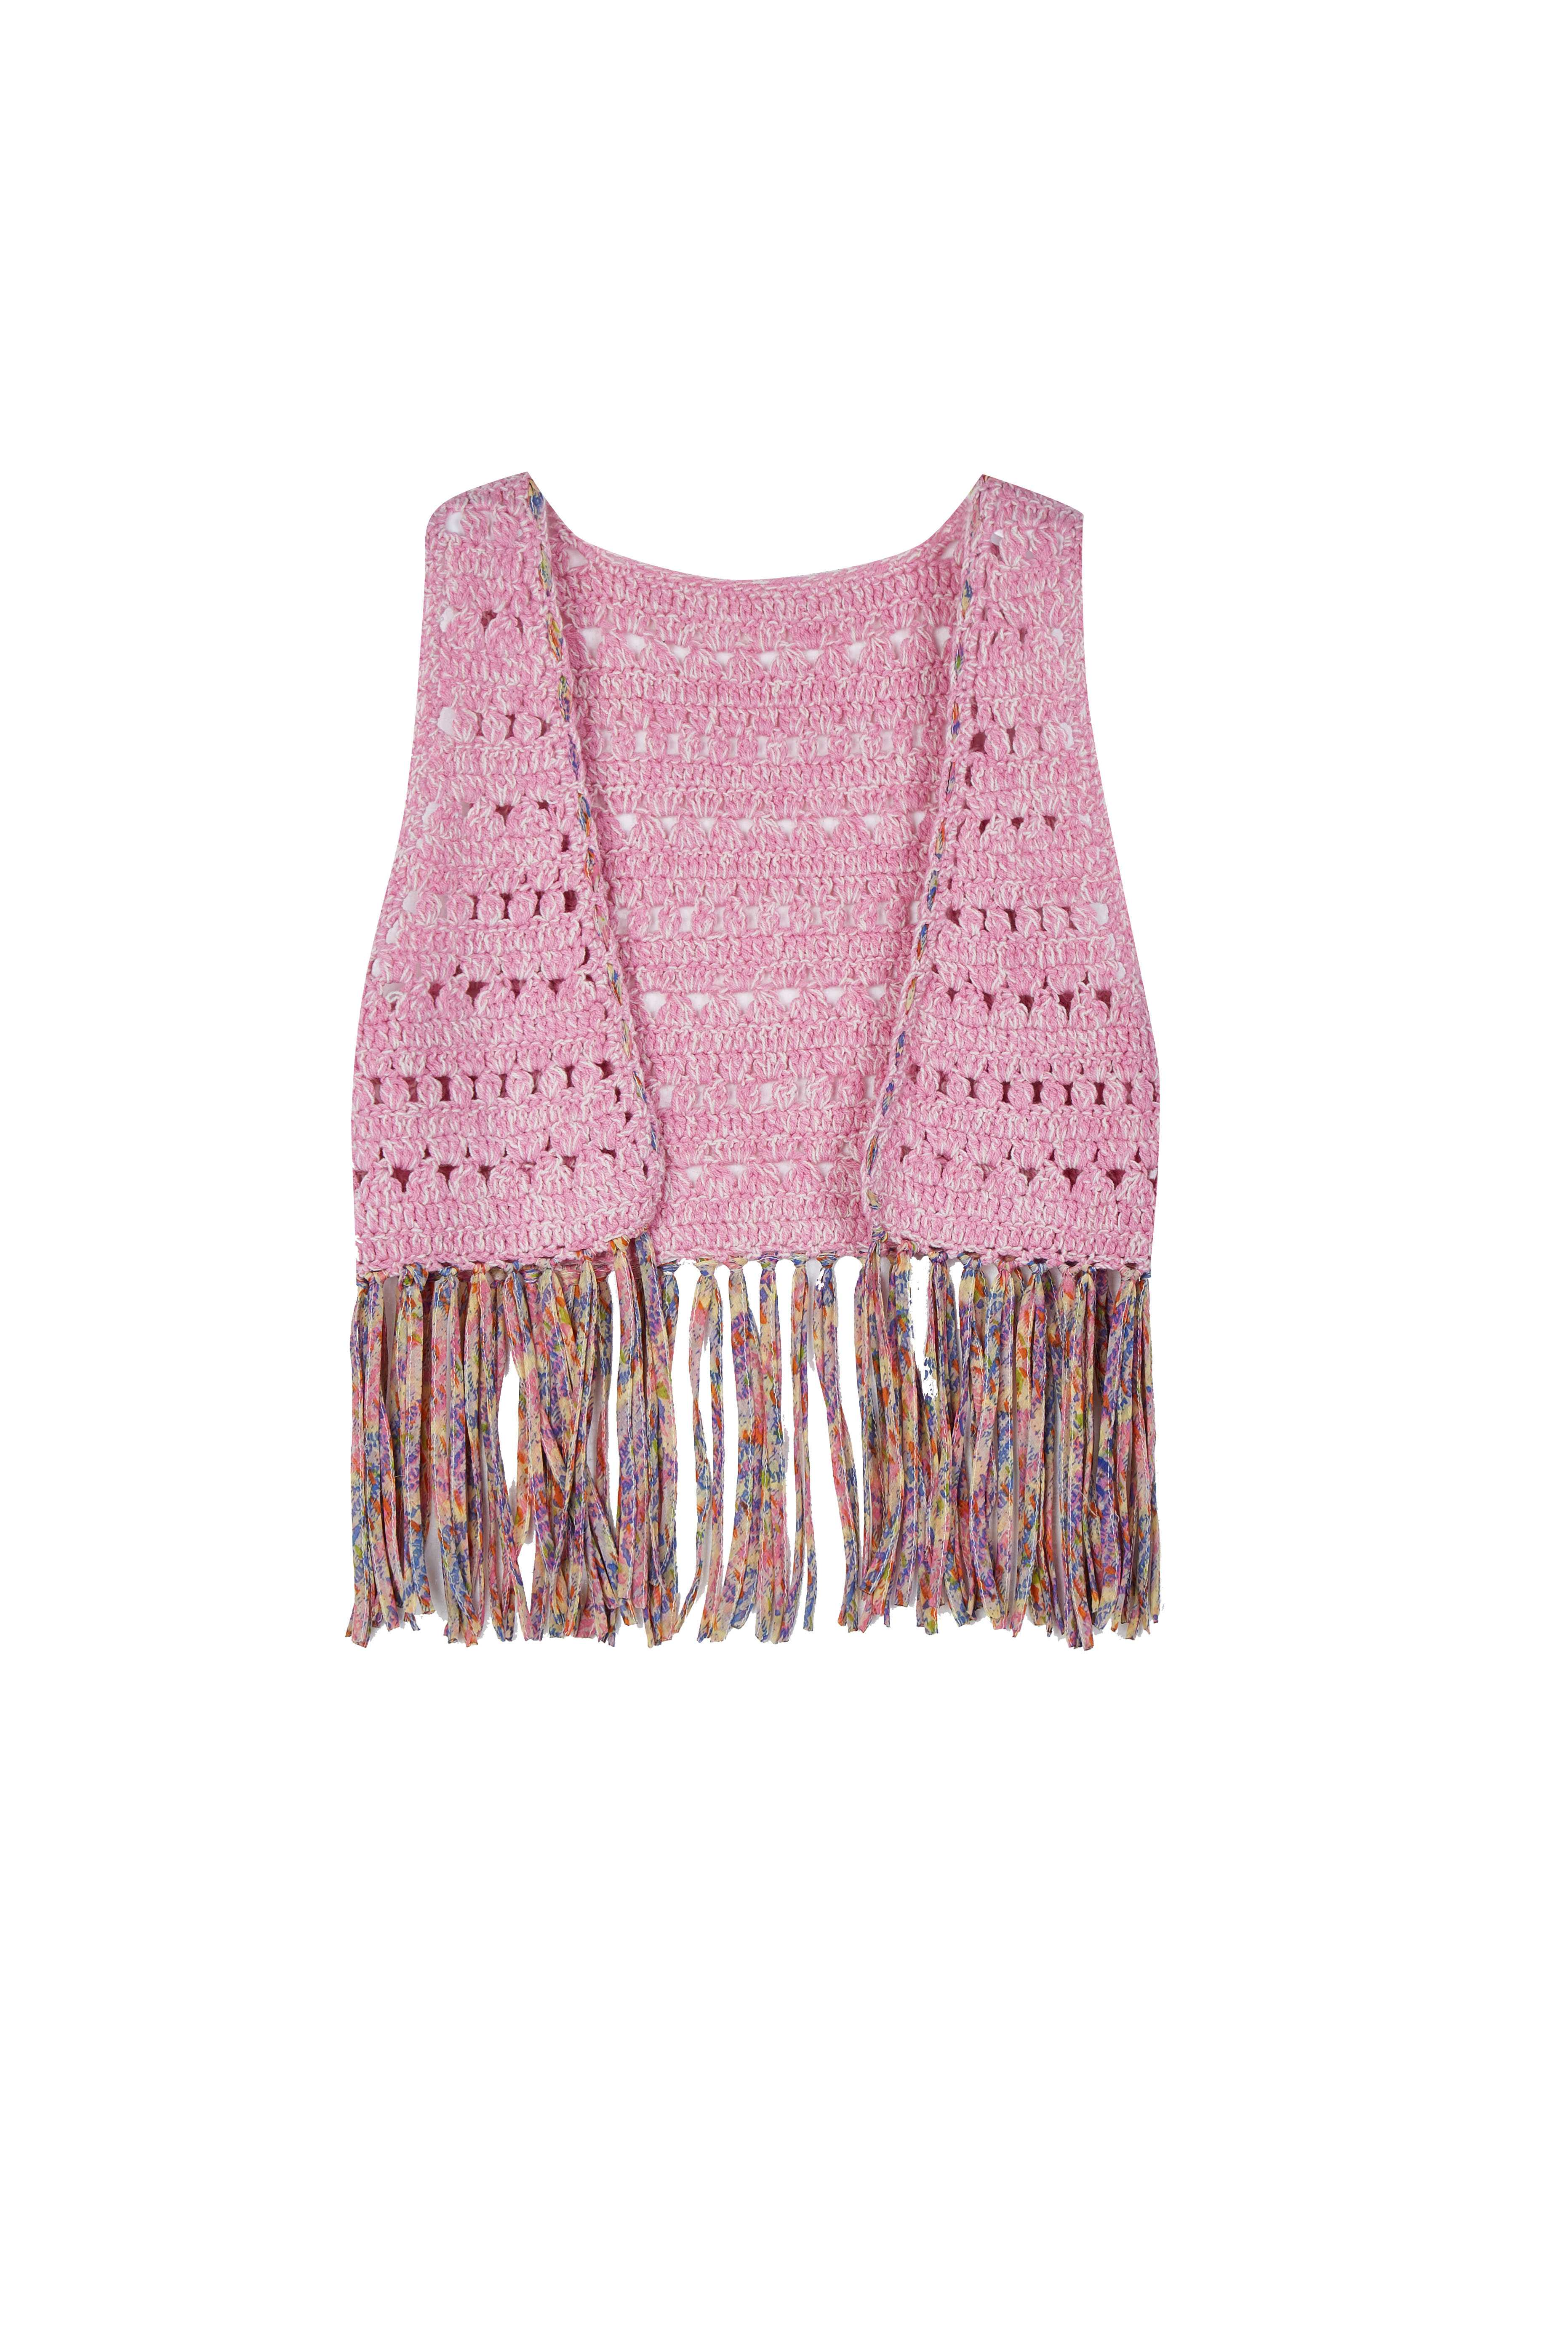 Baby's Summer Hollow Knit Wrap Crochet Vest Chiffon Fringe Holiday Cardigan